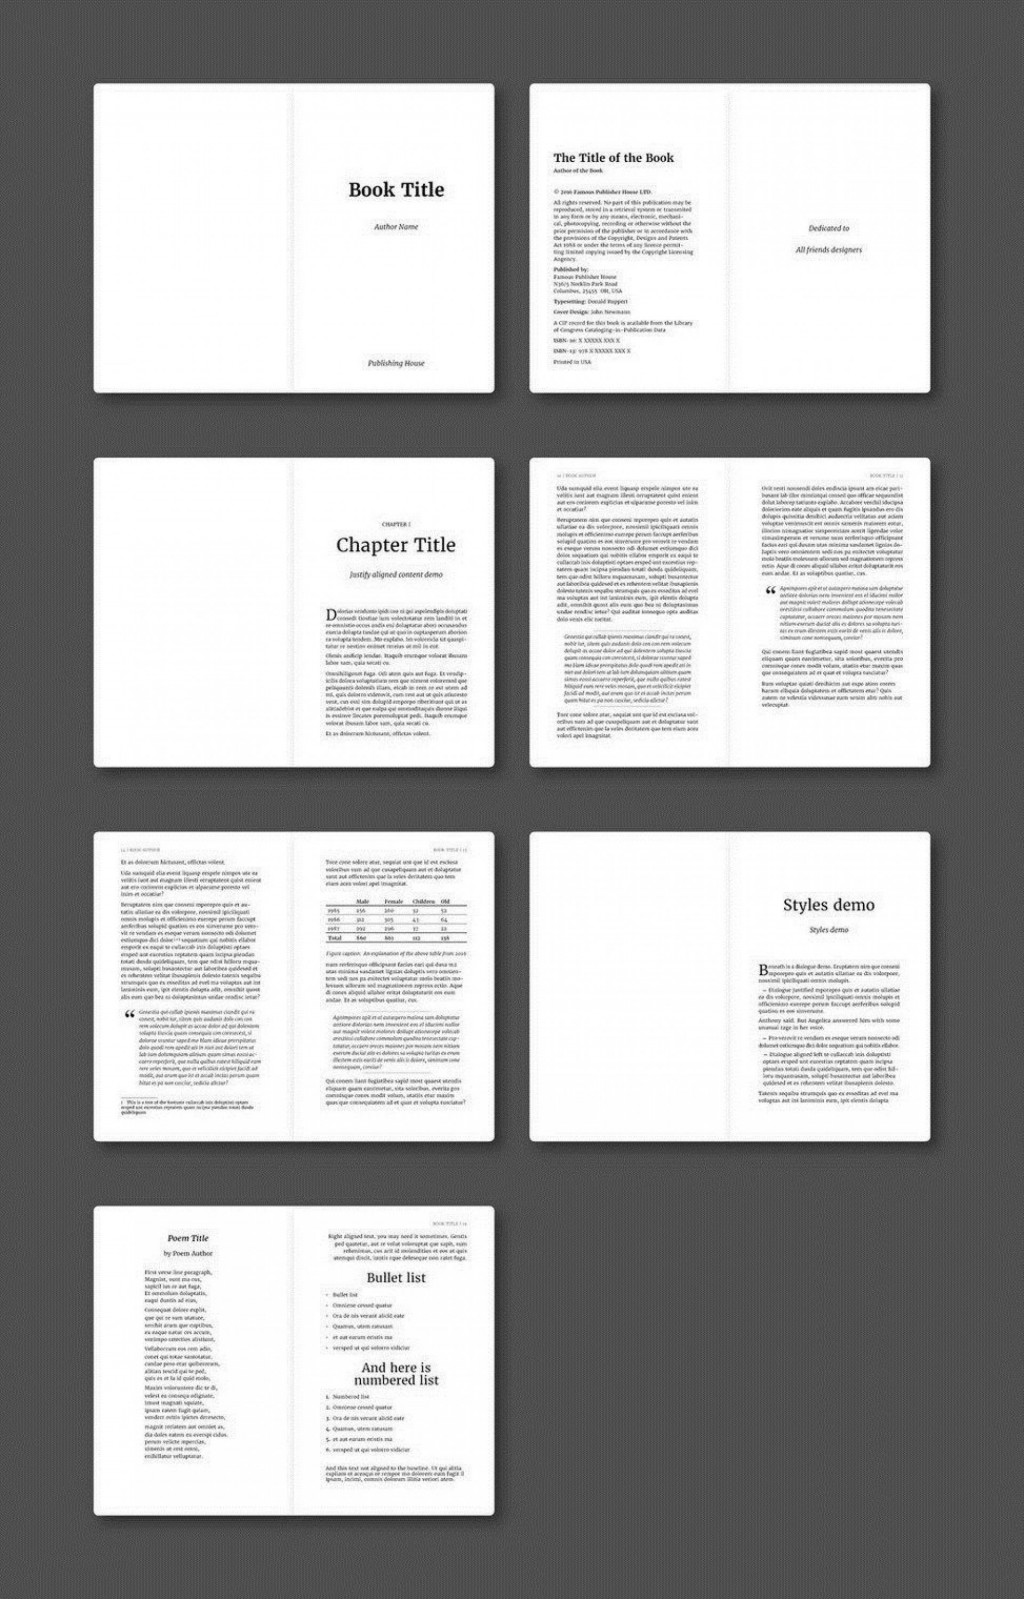 002 Fearsome Free Indesign Book Template Download High Definition  Cs6 AdobeLarge